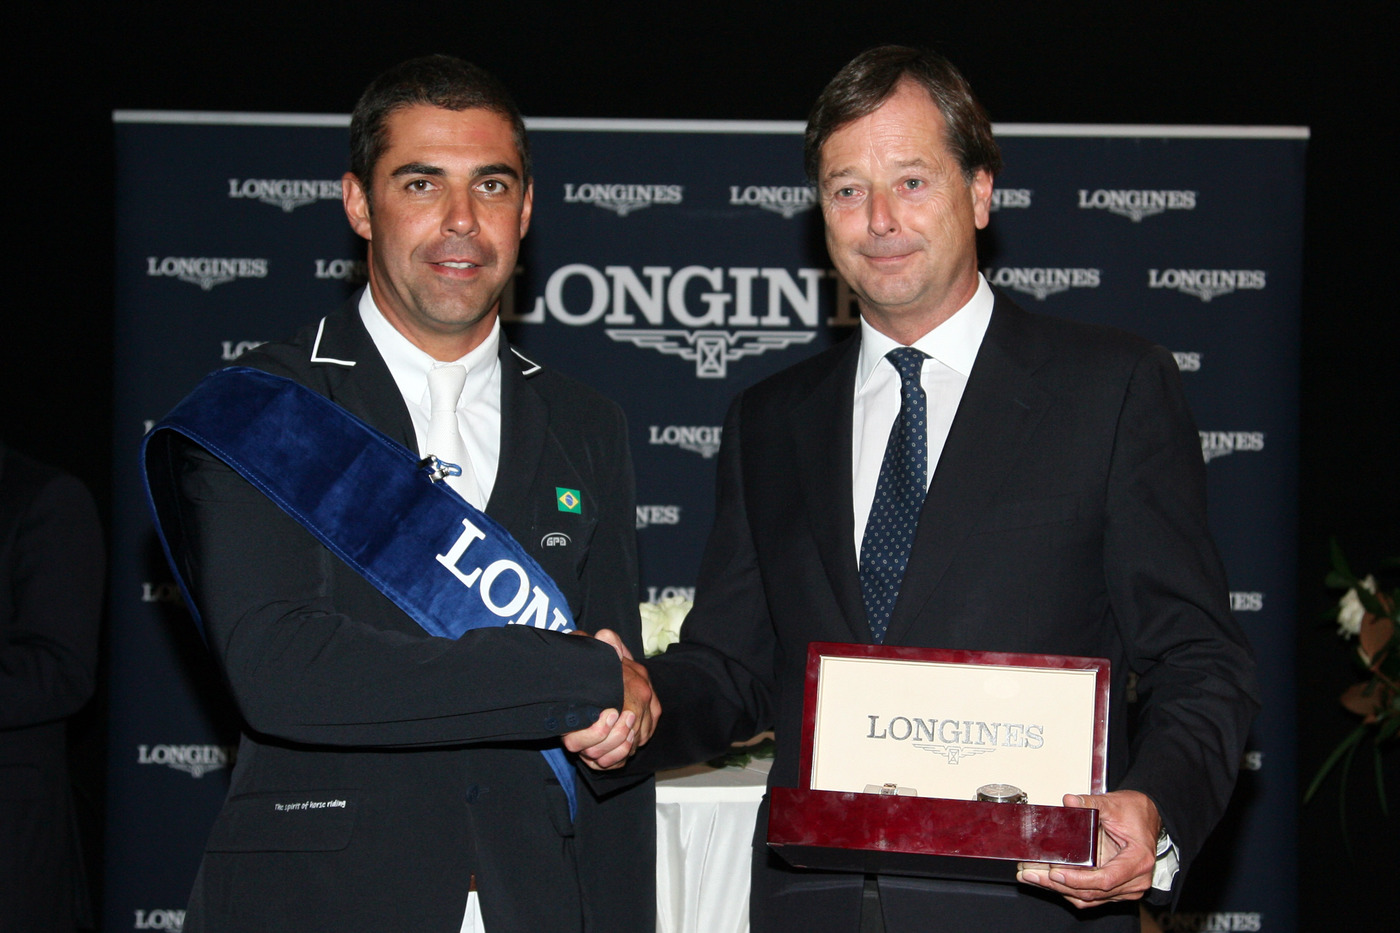 Longines Show Jumping Event: CSIO Barcelona 2